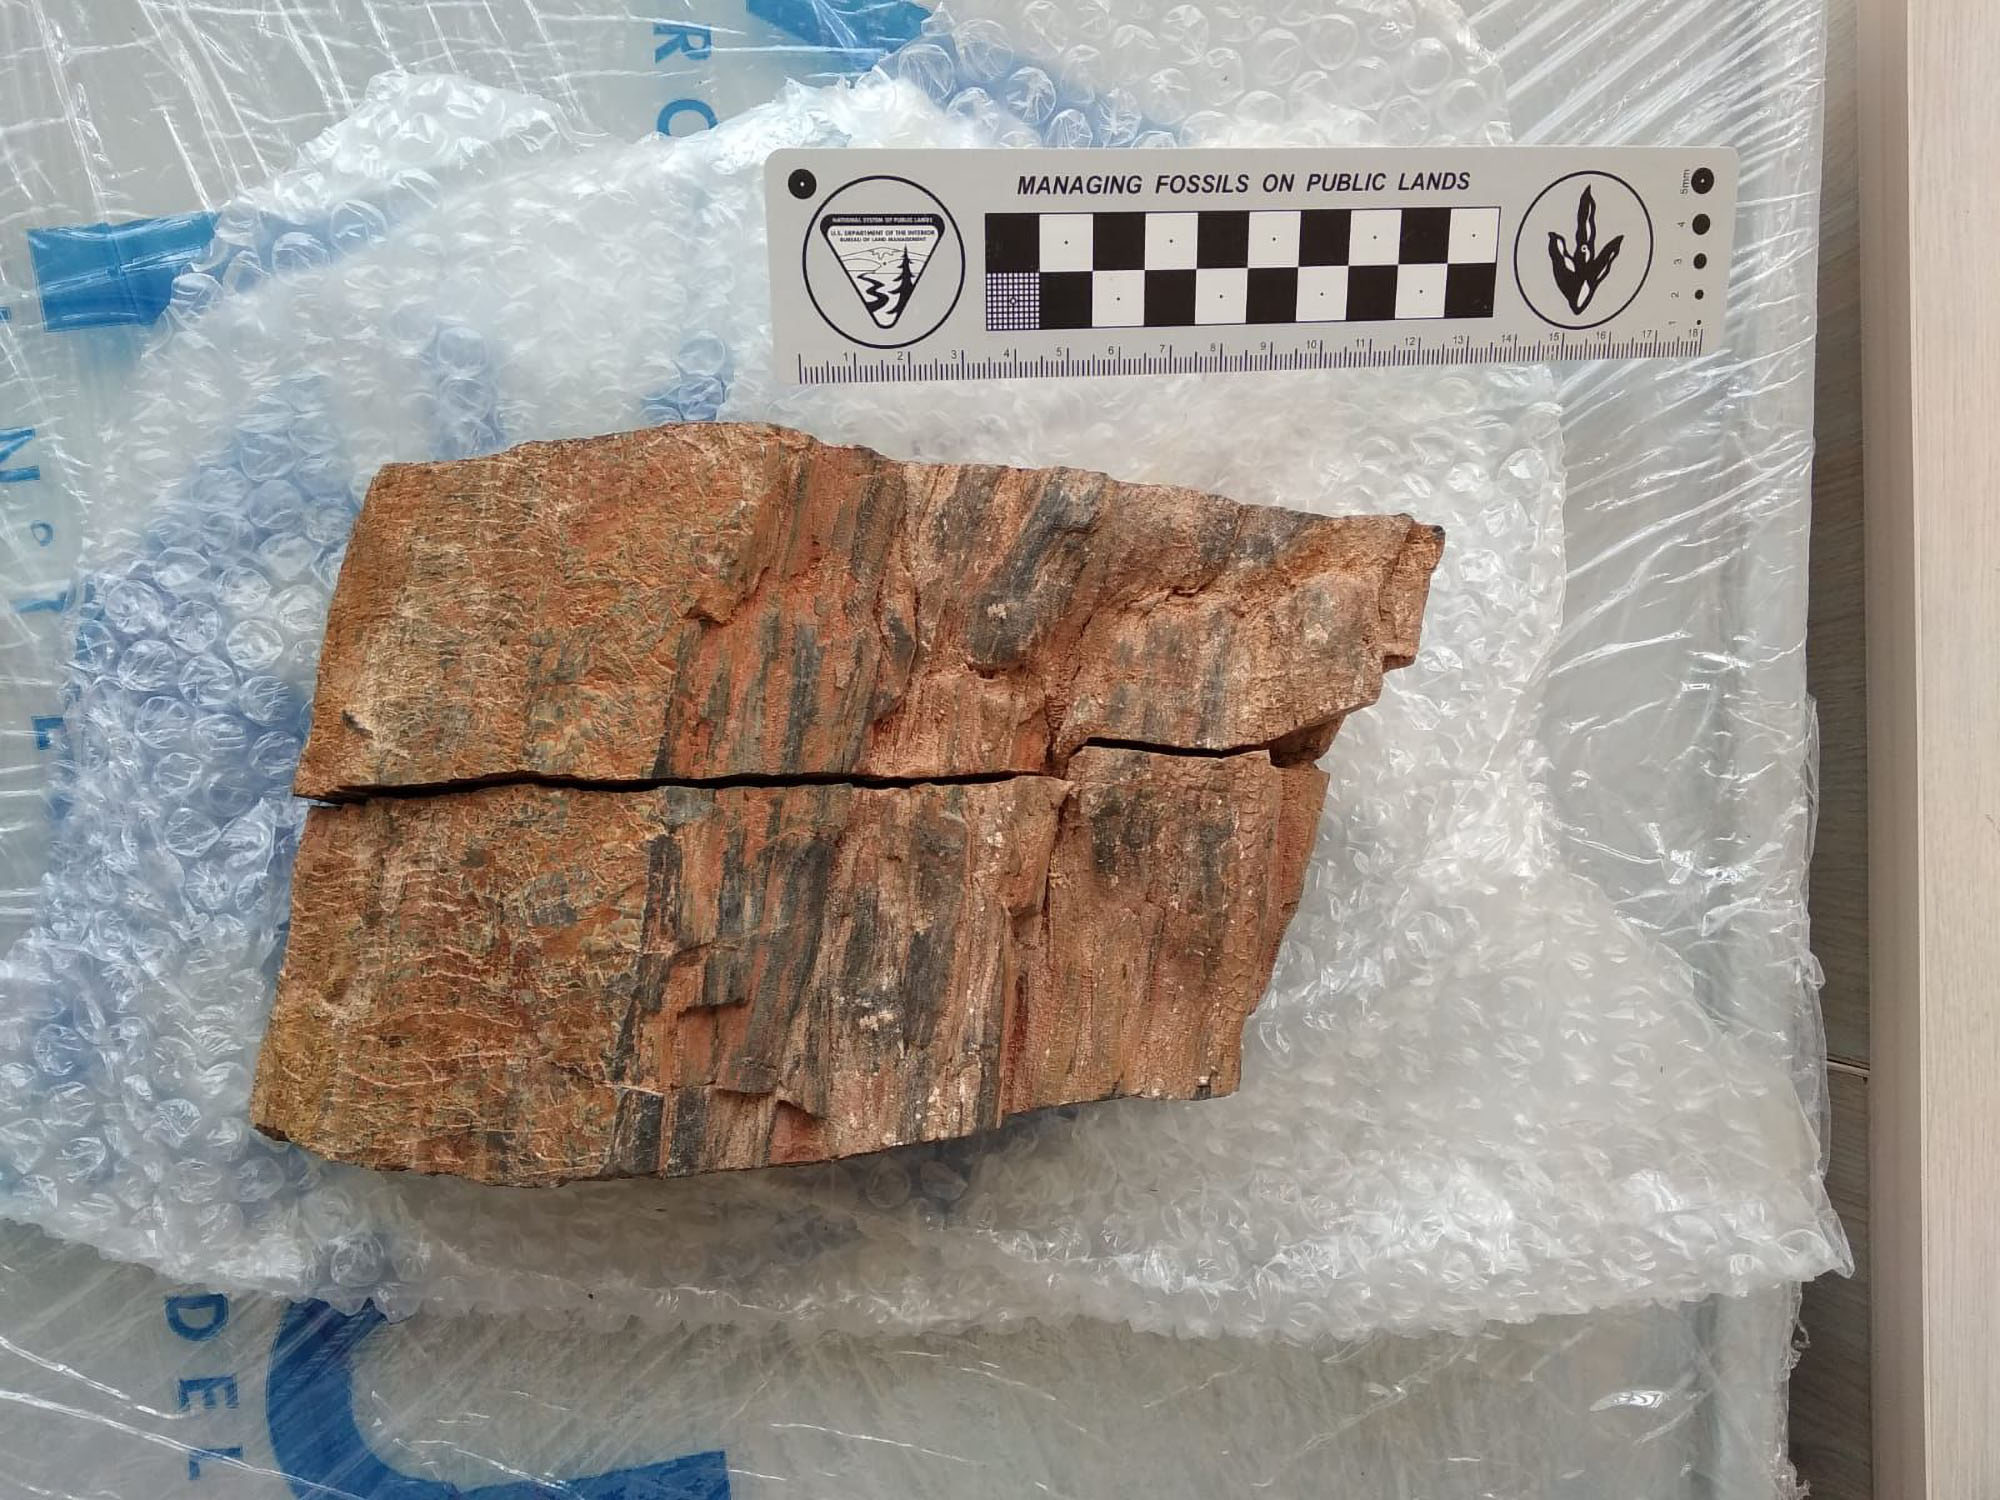 Treesy Come Treesy Go: Scientists Amazed As Stolen Cretaceous Trunk Is Returned 35 Years Later